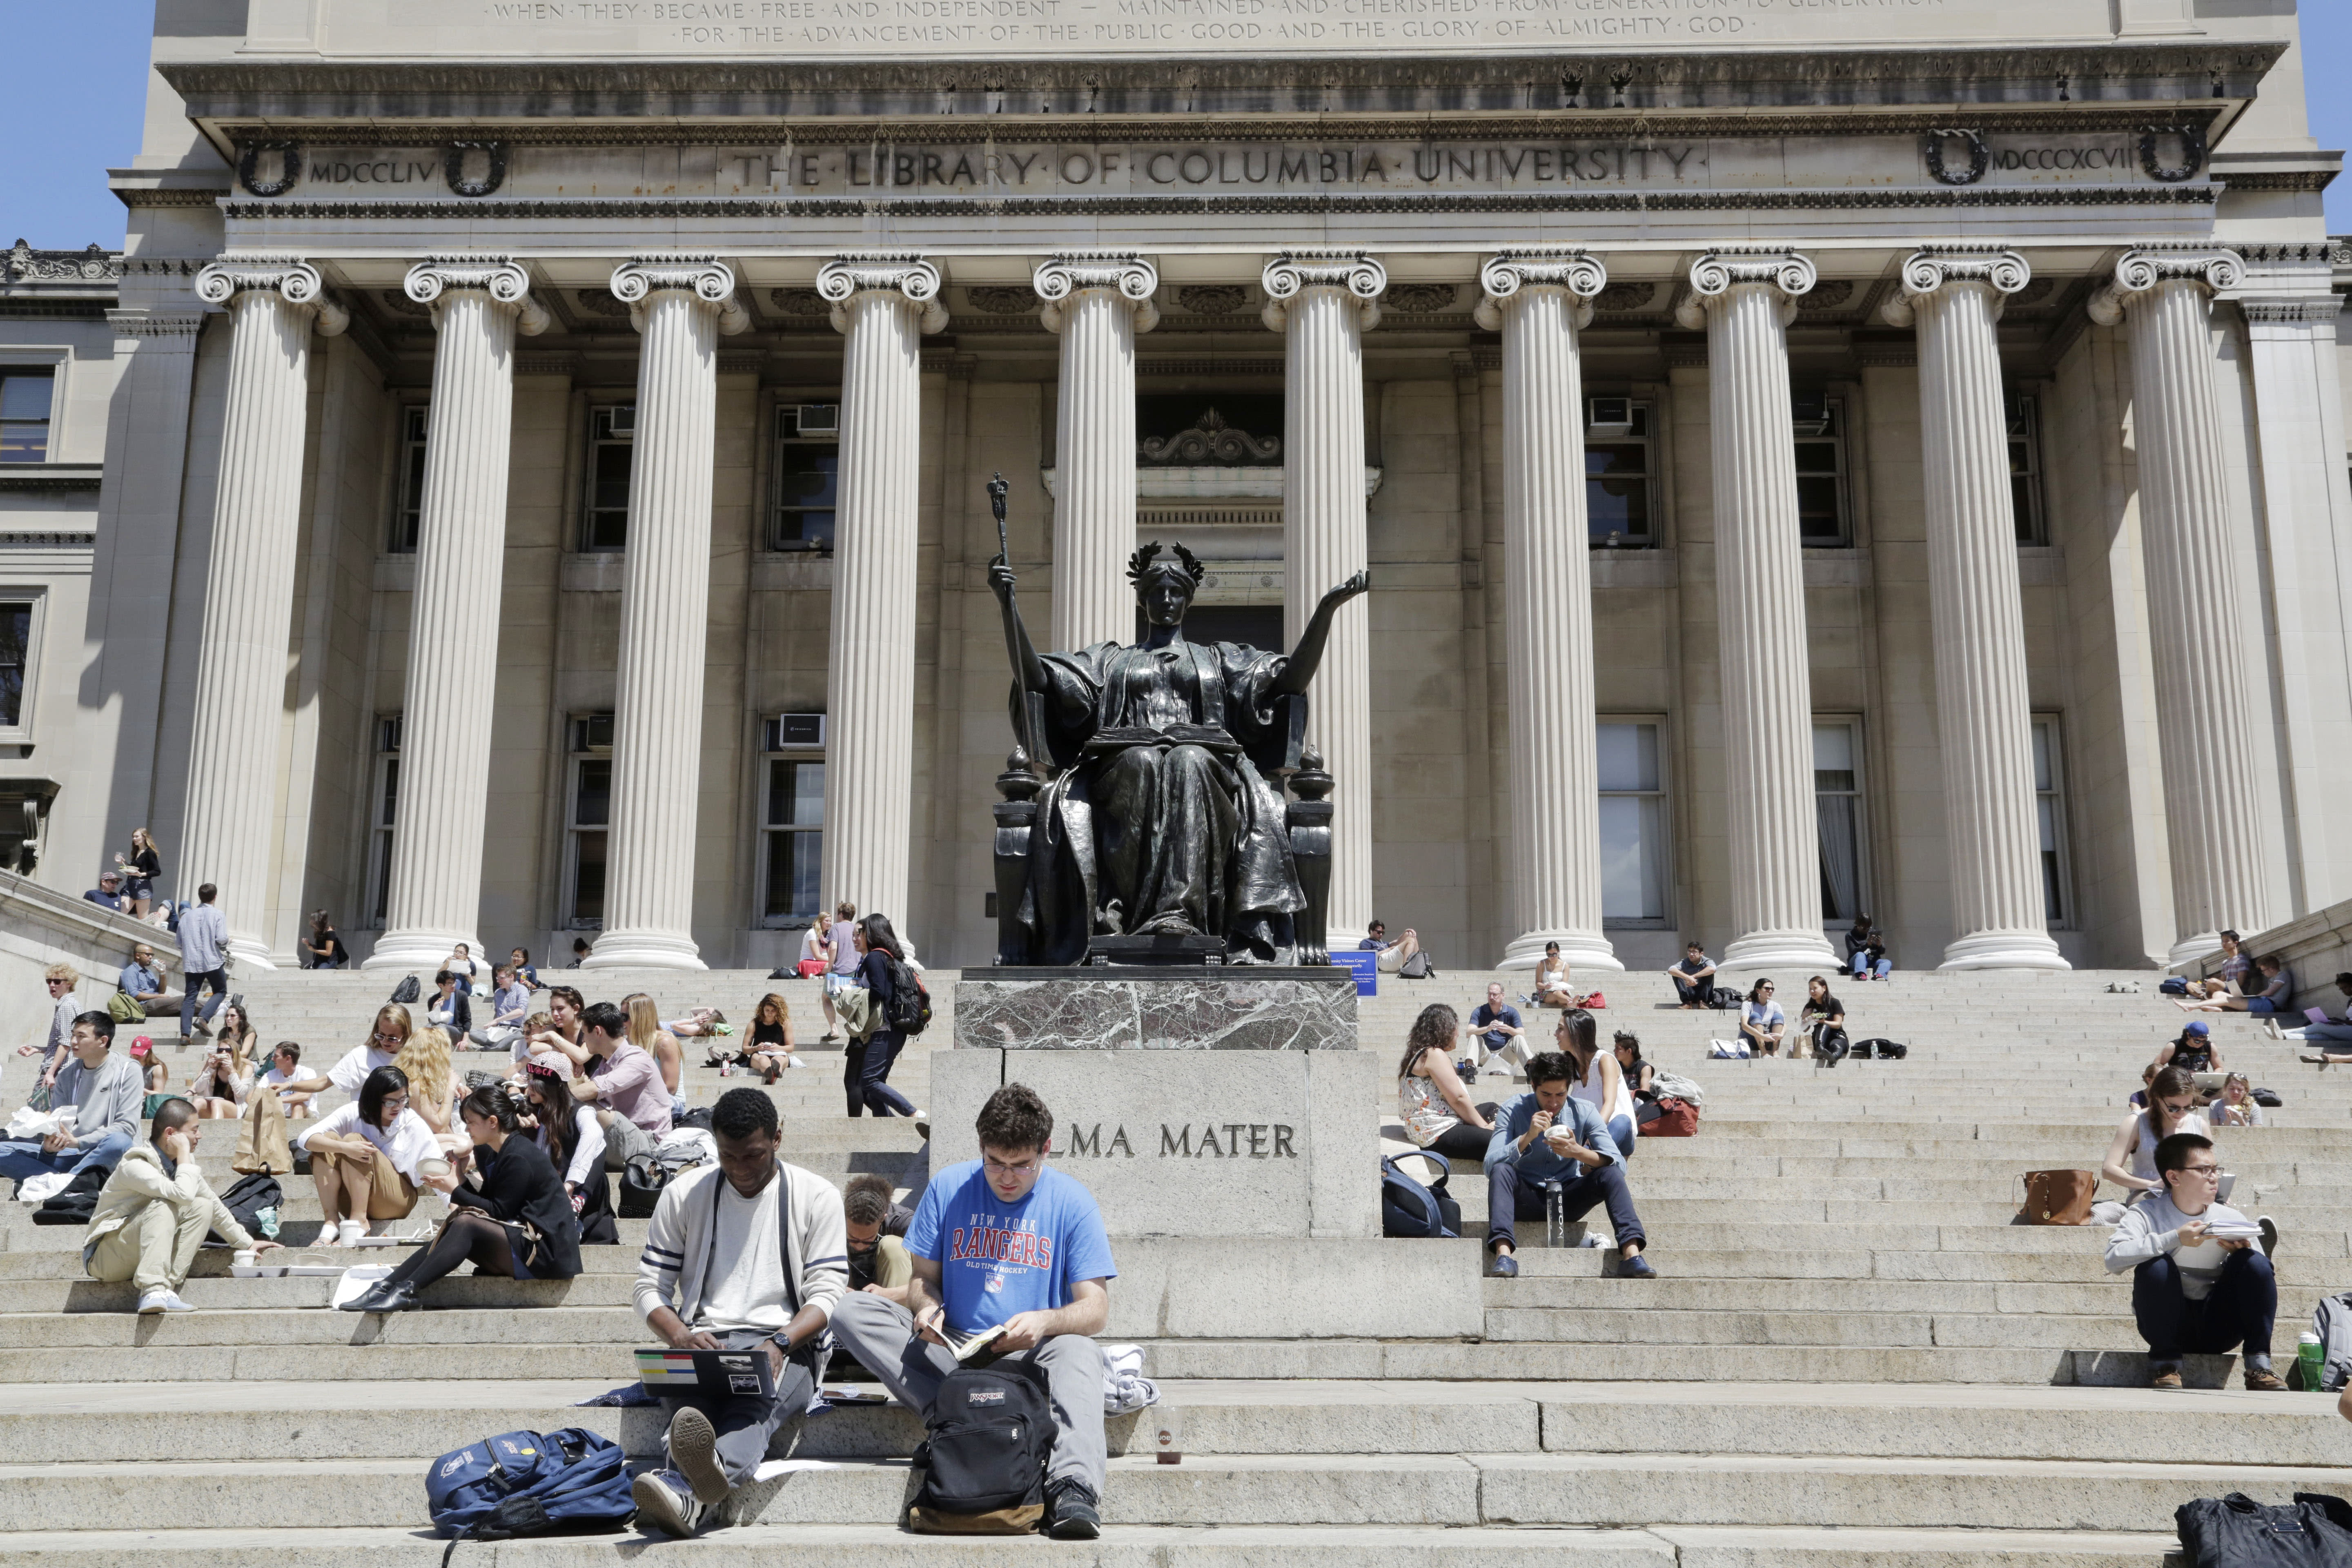 columbia university essay prompts Want to attend a small liberal arts college for women in a big city you find the best of both worlds in barnard college barnard college, located in new york city, is a private women's liberal arts college, affiliated with columbia university.